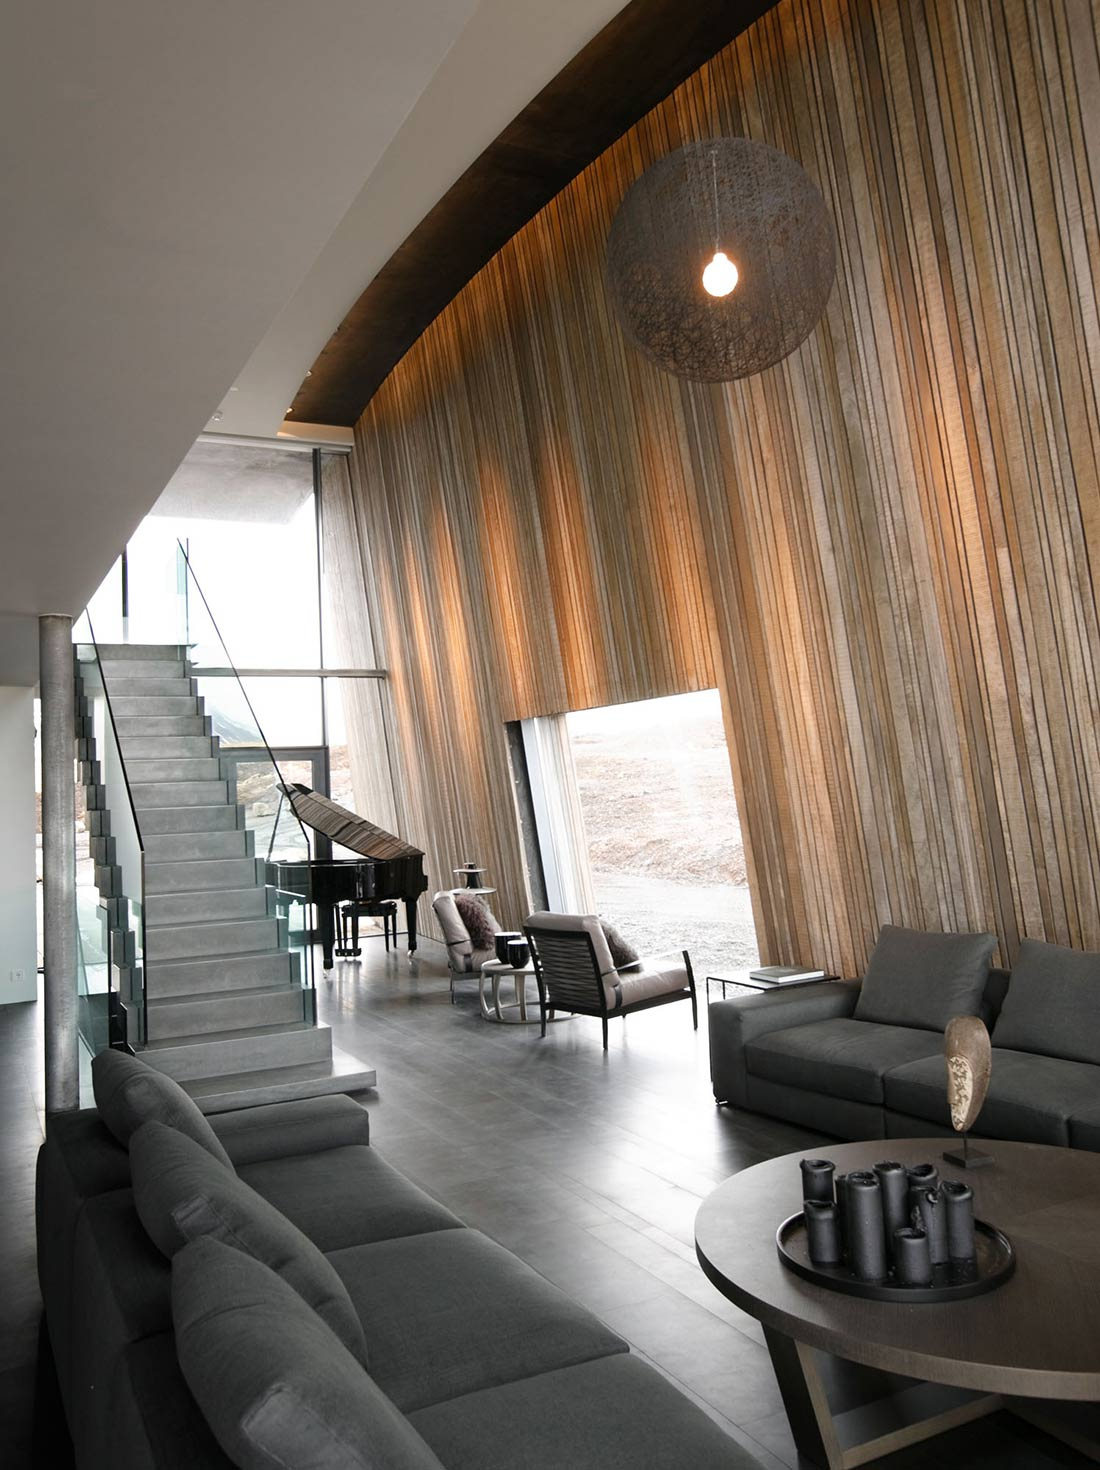 Stairs, Living Space, Vacation Home in Iceland Inspired by Nature